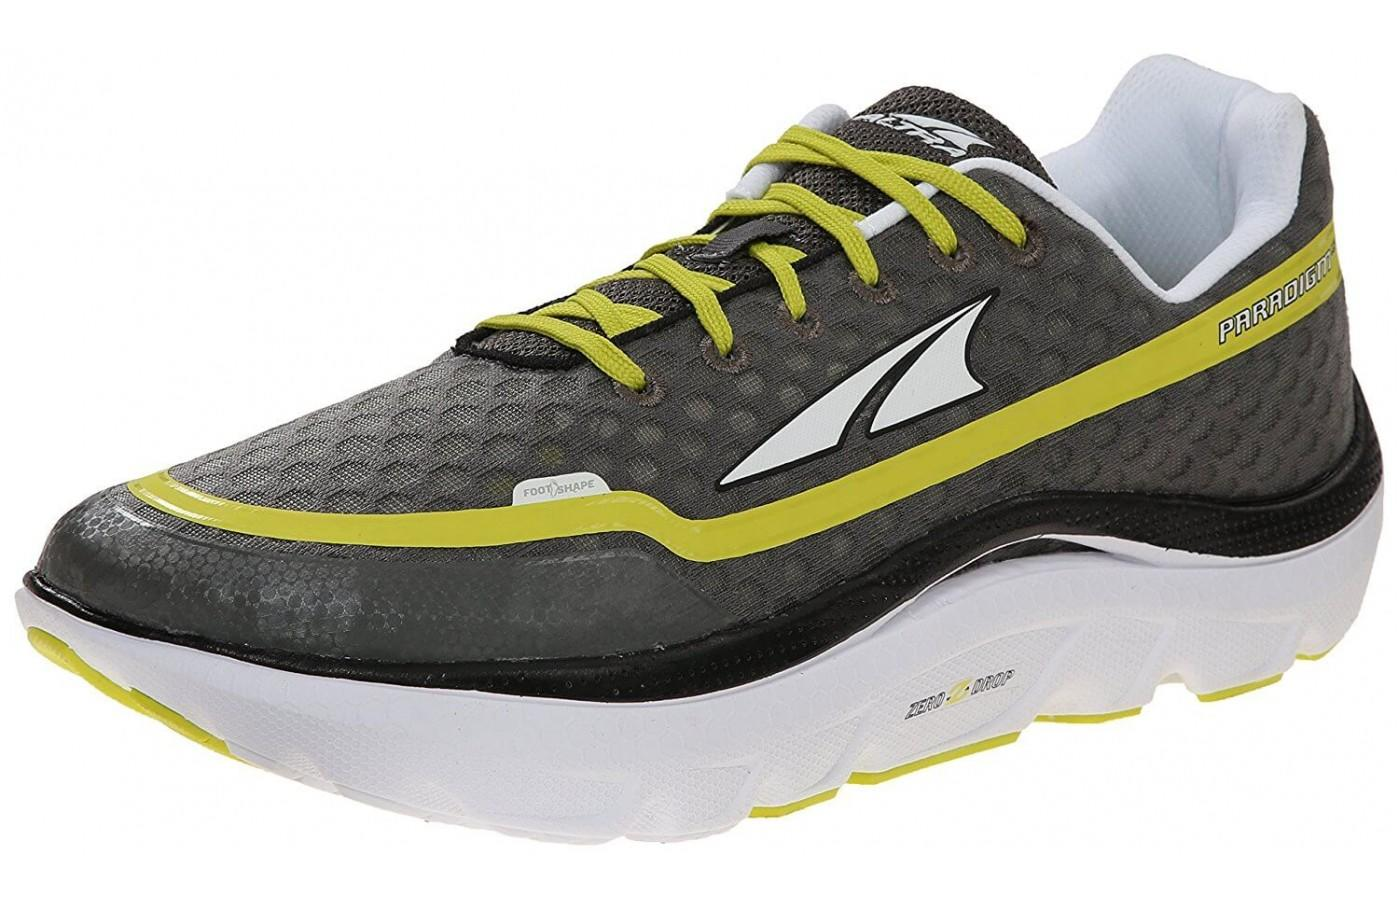 Altra Paradigm 1.5 is an older model in the Paradigm line